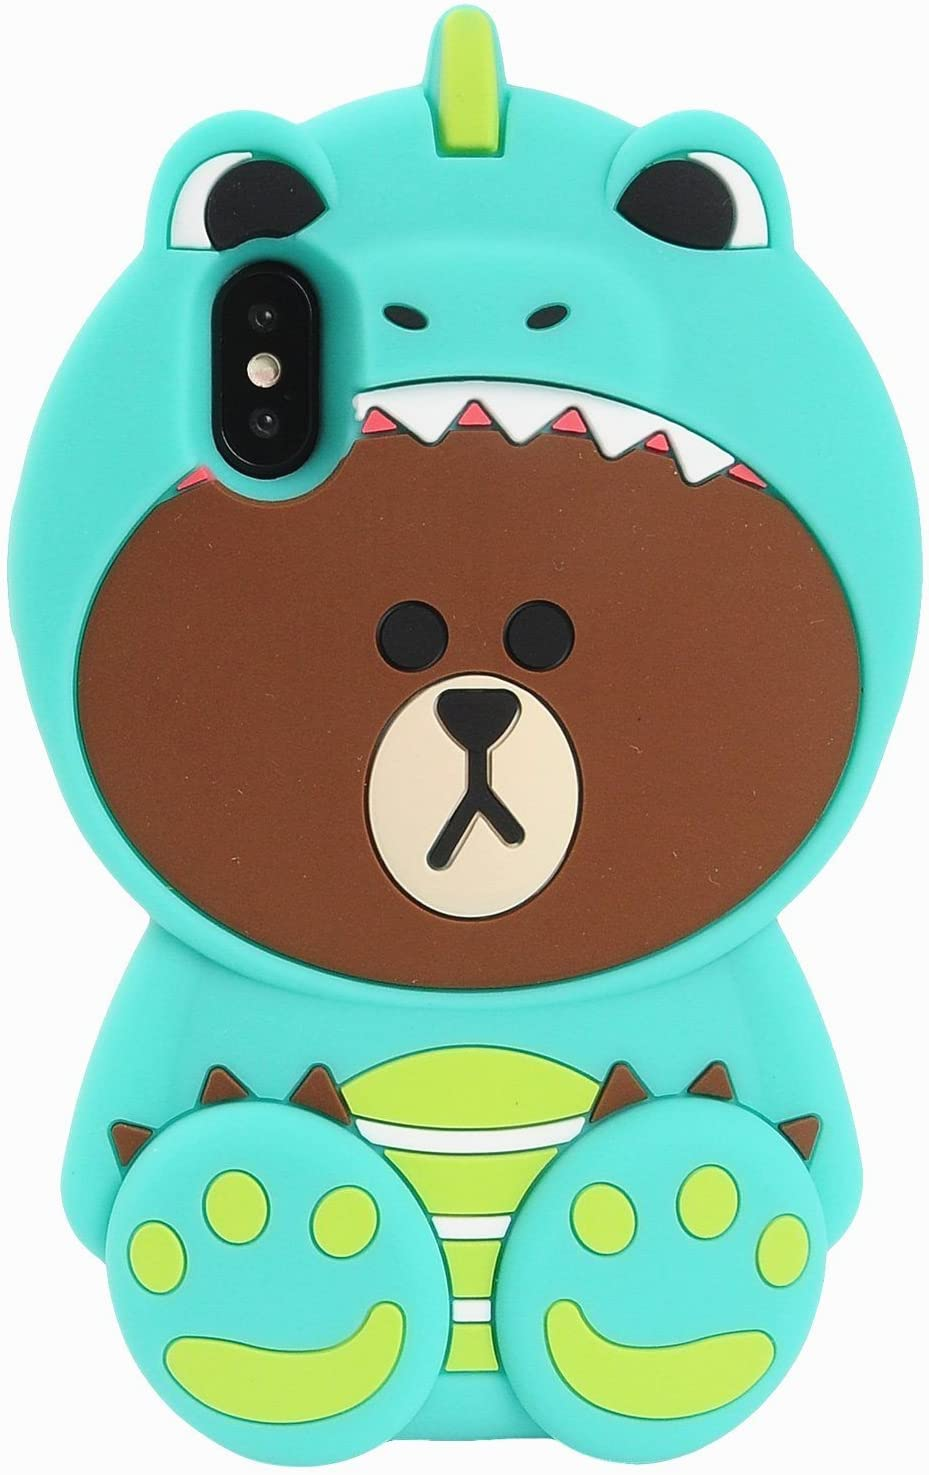 """Artbling Case for iPhone XR 6.1"""" Silicone 3D Cartoon Animal Cover, Kids Girls Cool Fun Lovely Cute Bear Cases,Kawaii Soft Gel Rubber Unique Character Fashion Protector for iPhone XR (Green Dinosaur)"""